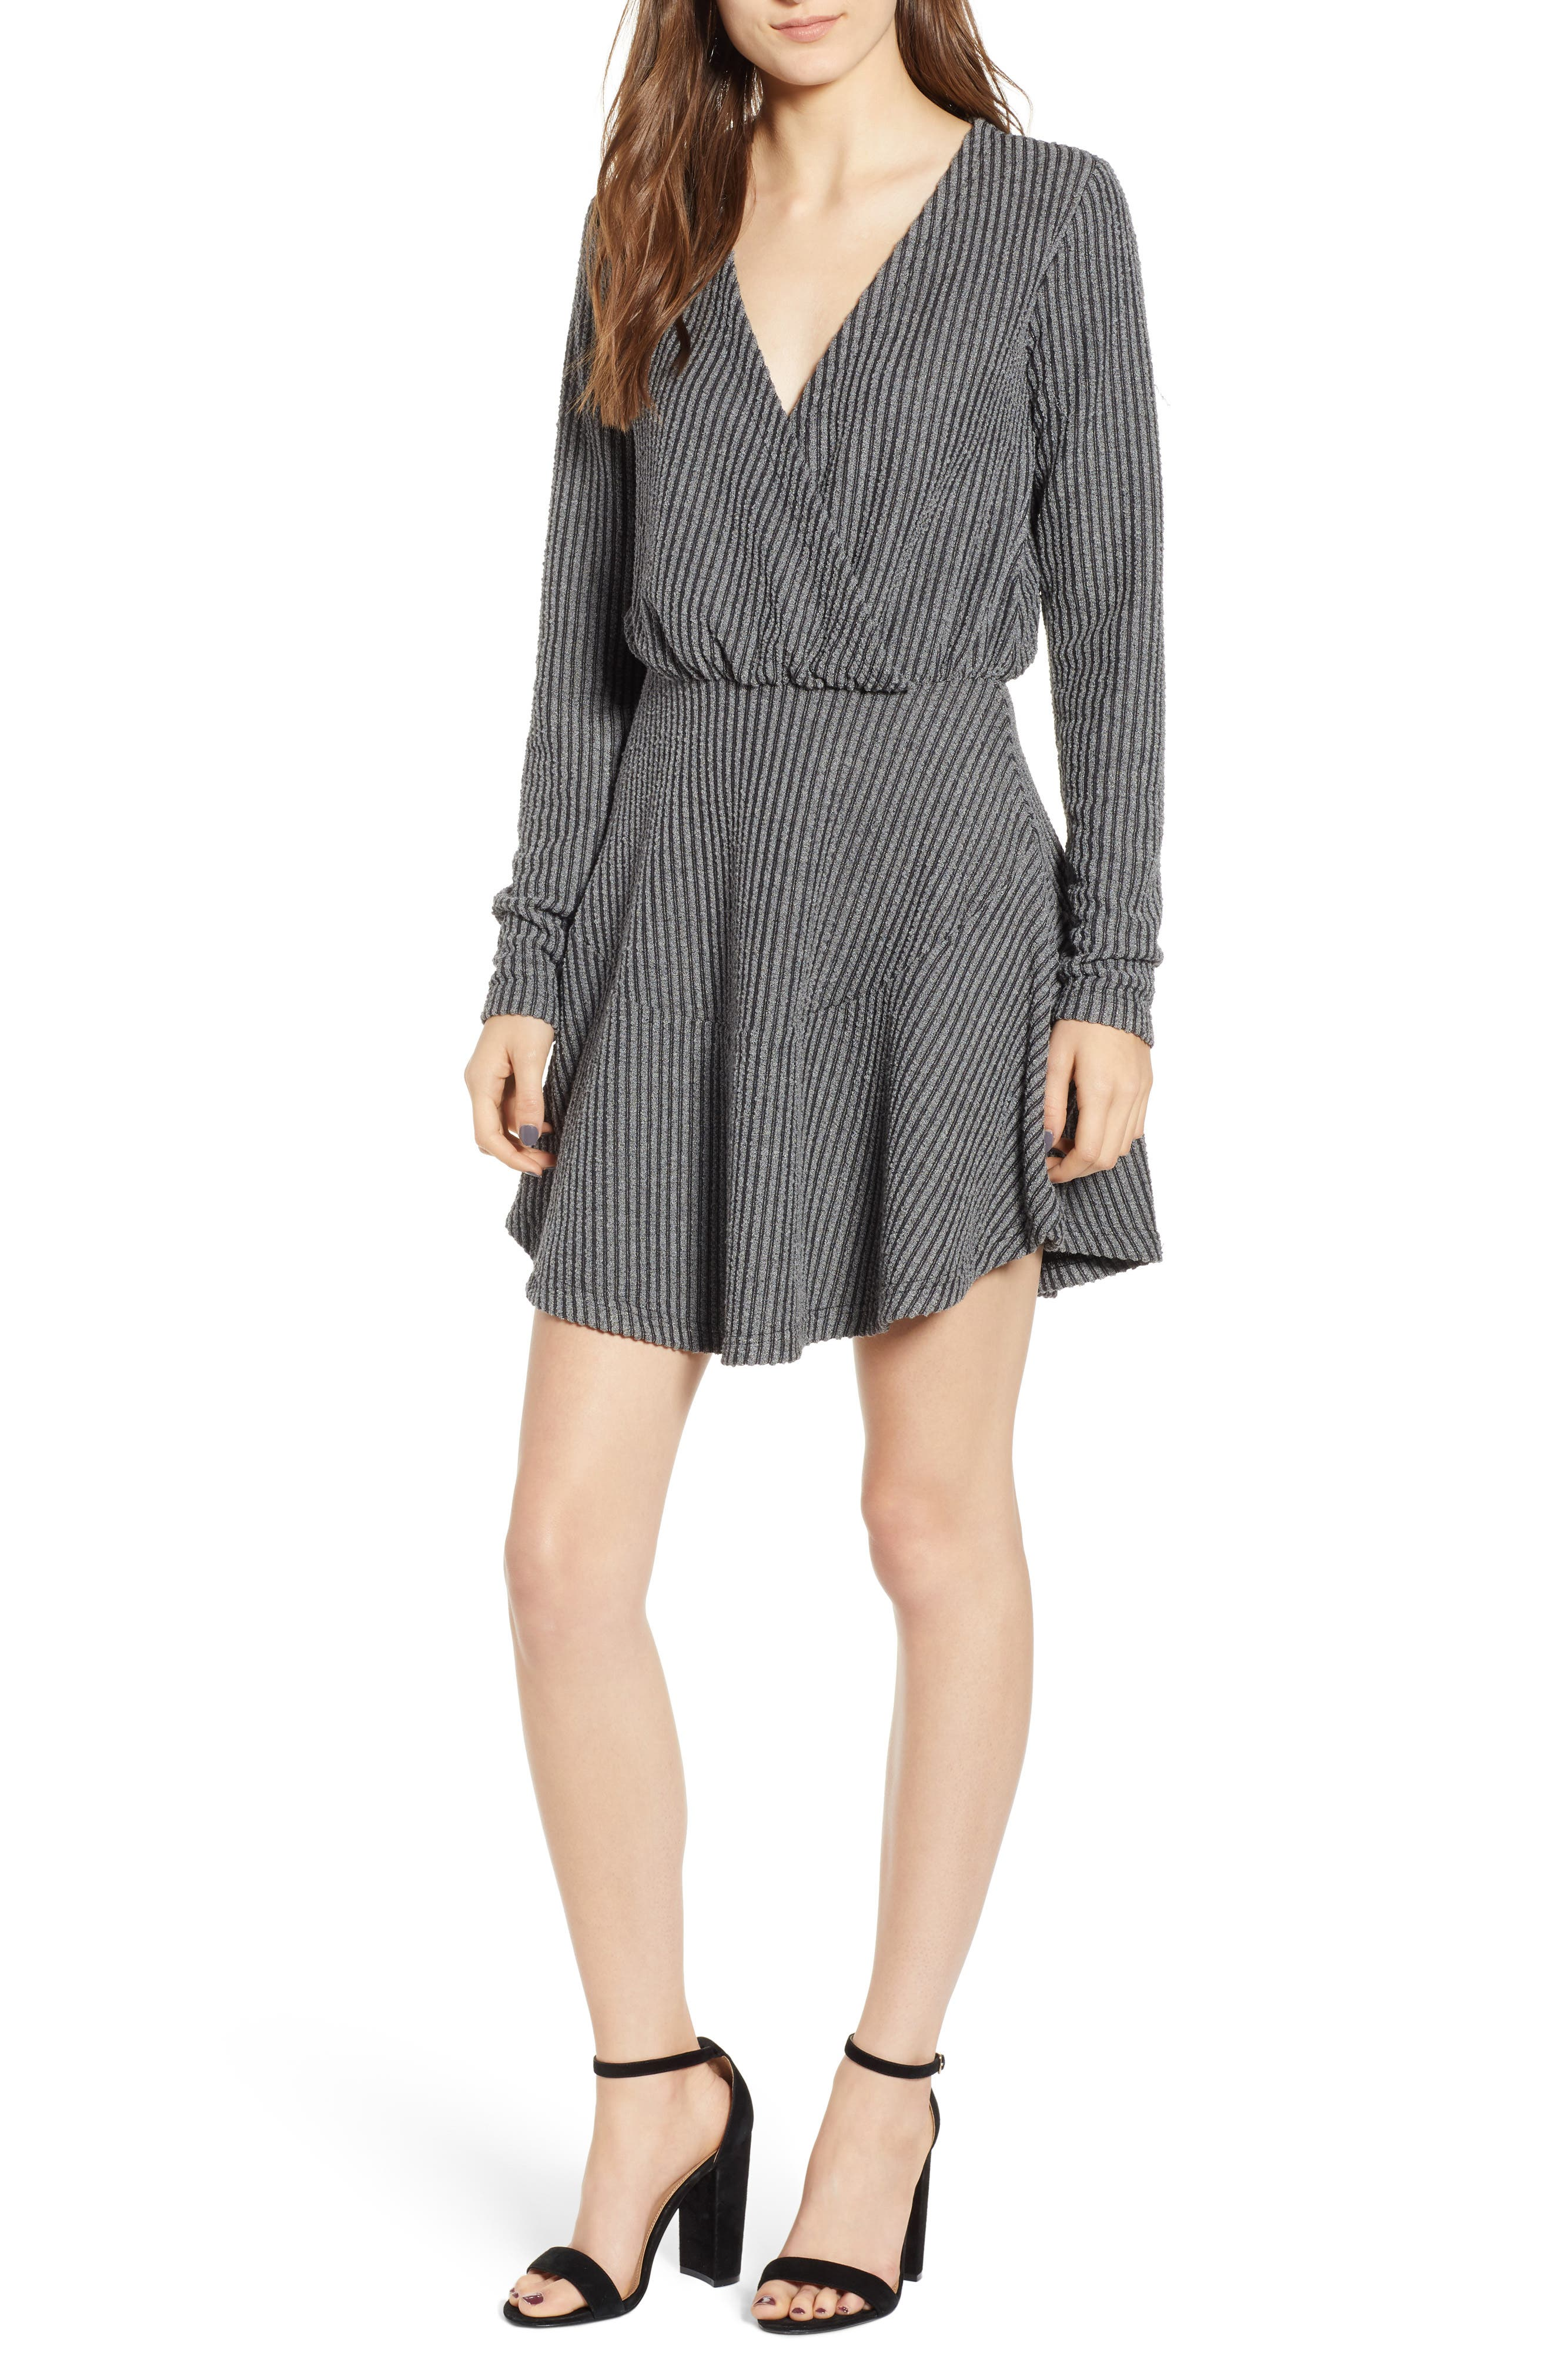 The Fifth Label Spark Ribbed Dress